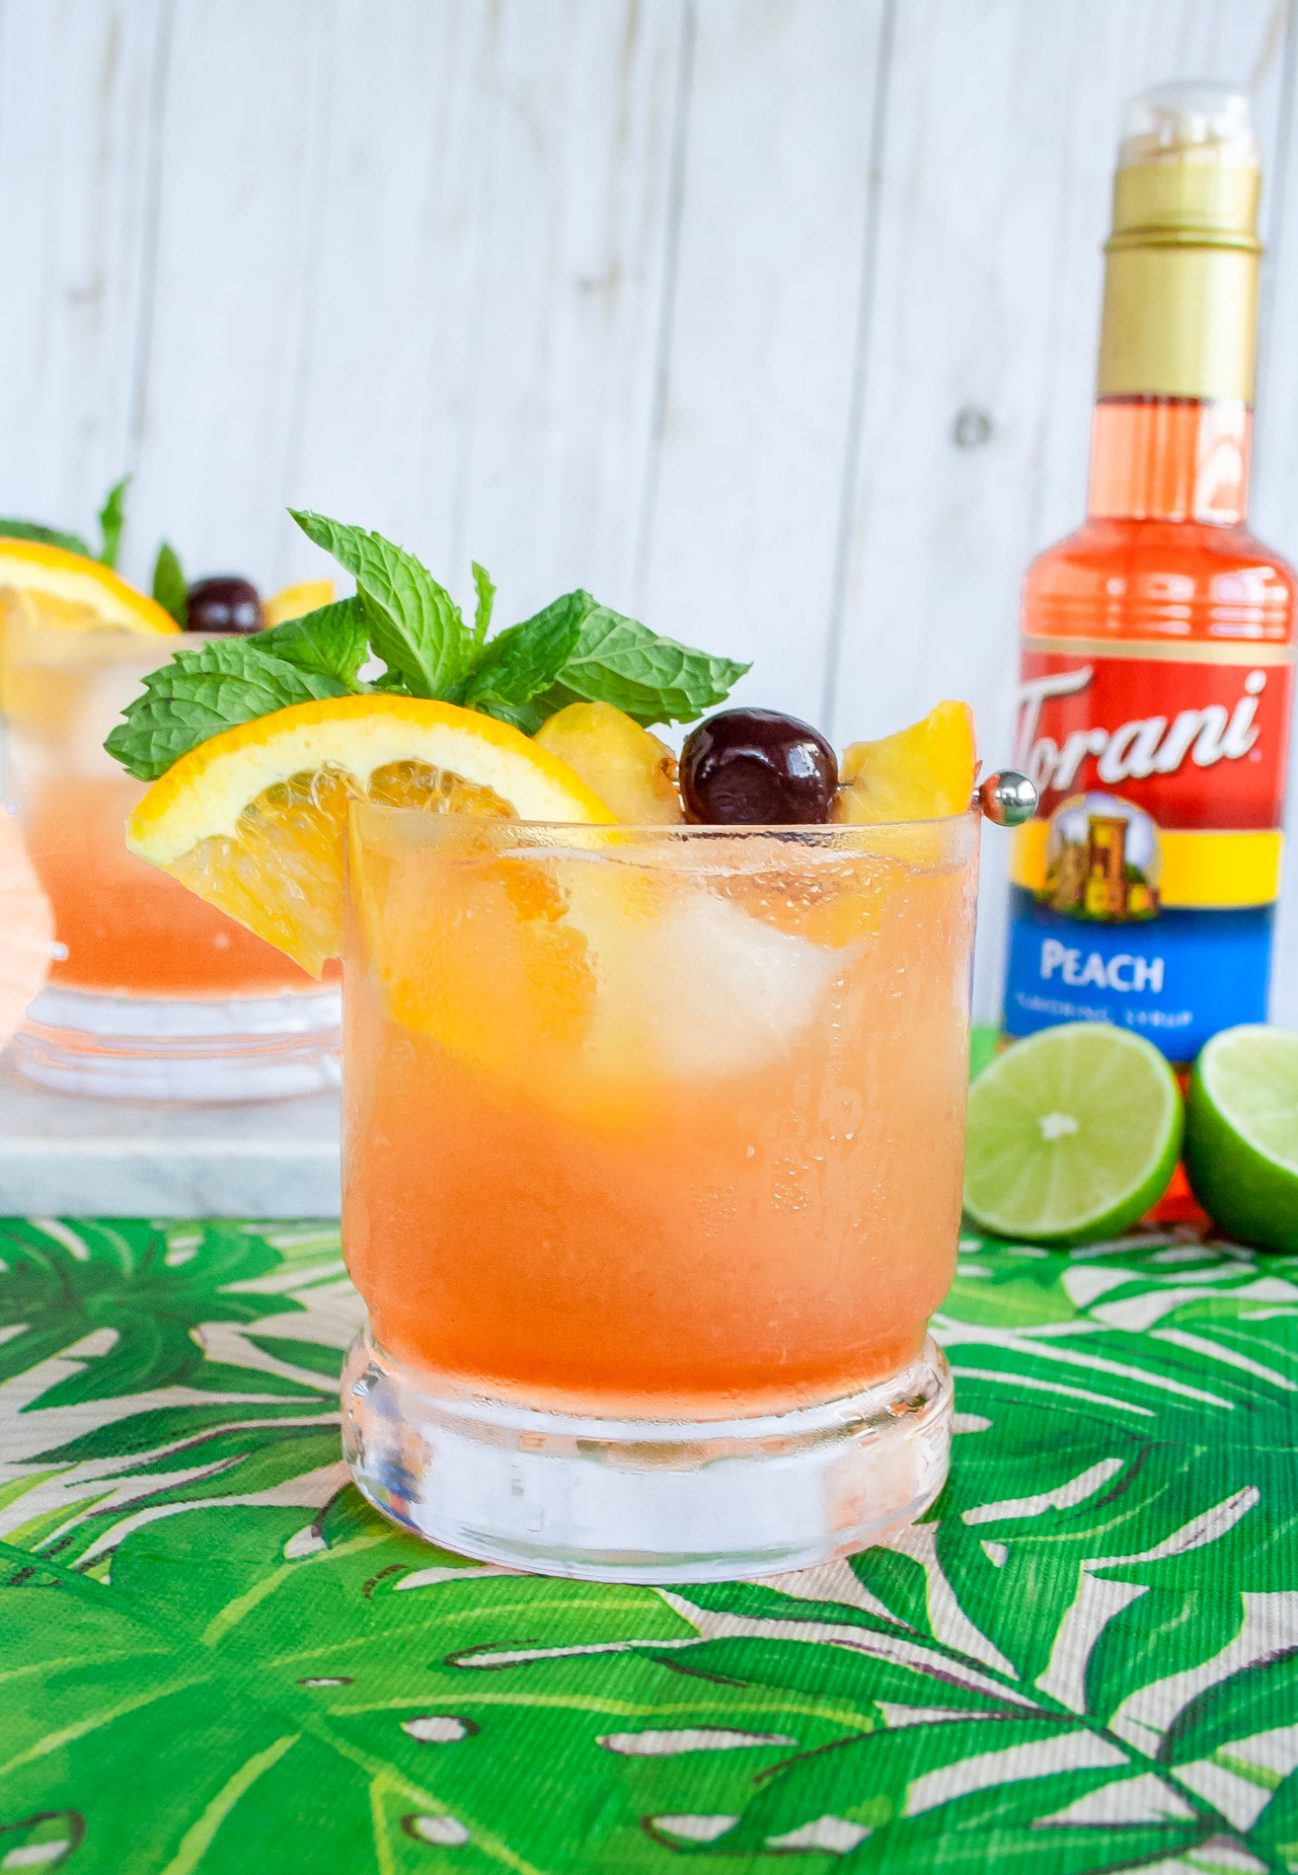 A peachy Mai Tai cocktail made easy with Torani syrup. This Torani cocktail has two types of rum and can be customized just how you like. It's an easy any time cocktail perfect for summer or winter when you are looking to whisked away to warmer days. Elle Talk| #ad #ToraniEndlessSummer #cocktail #cocktailrecipe #drink #drinks #rum #rumcocktail #summer #recipeoftheday #drinkrecipe